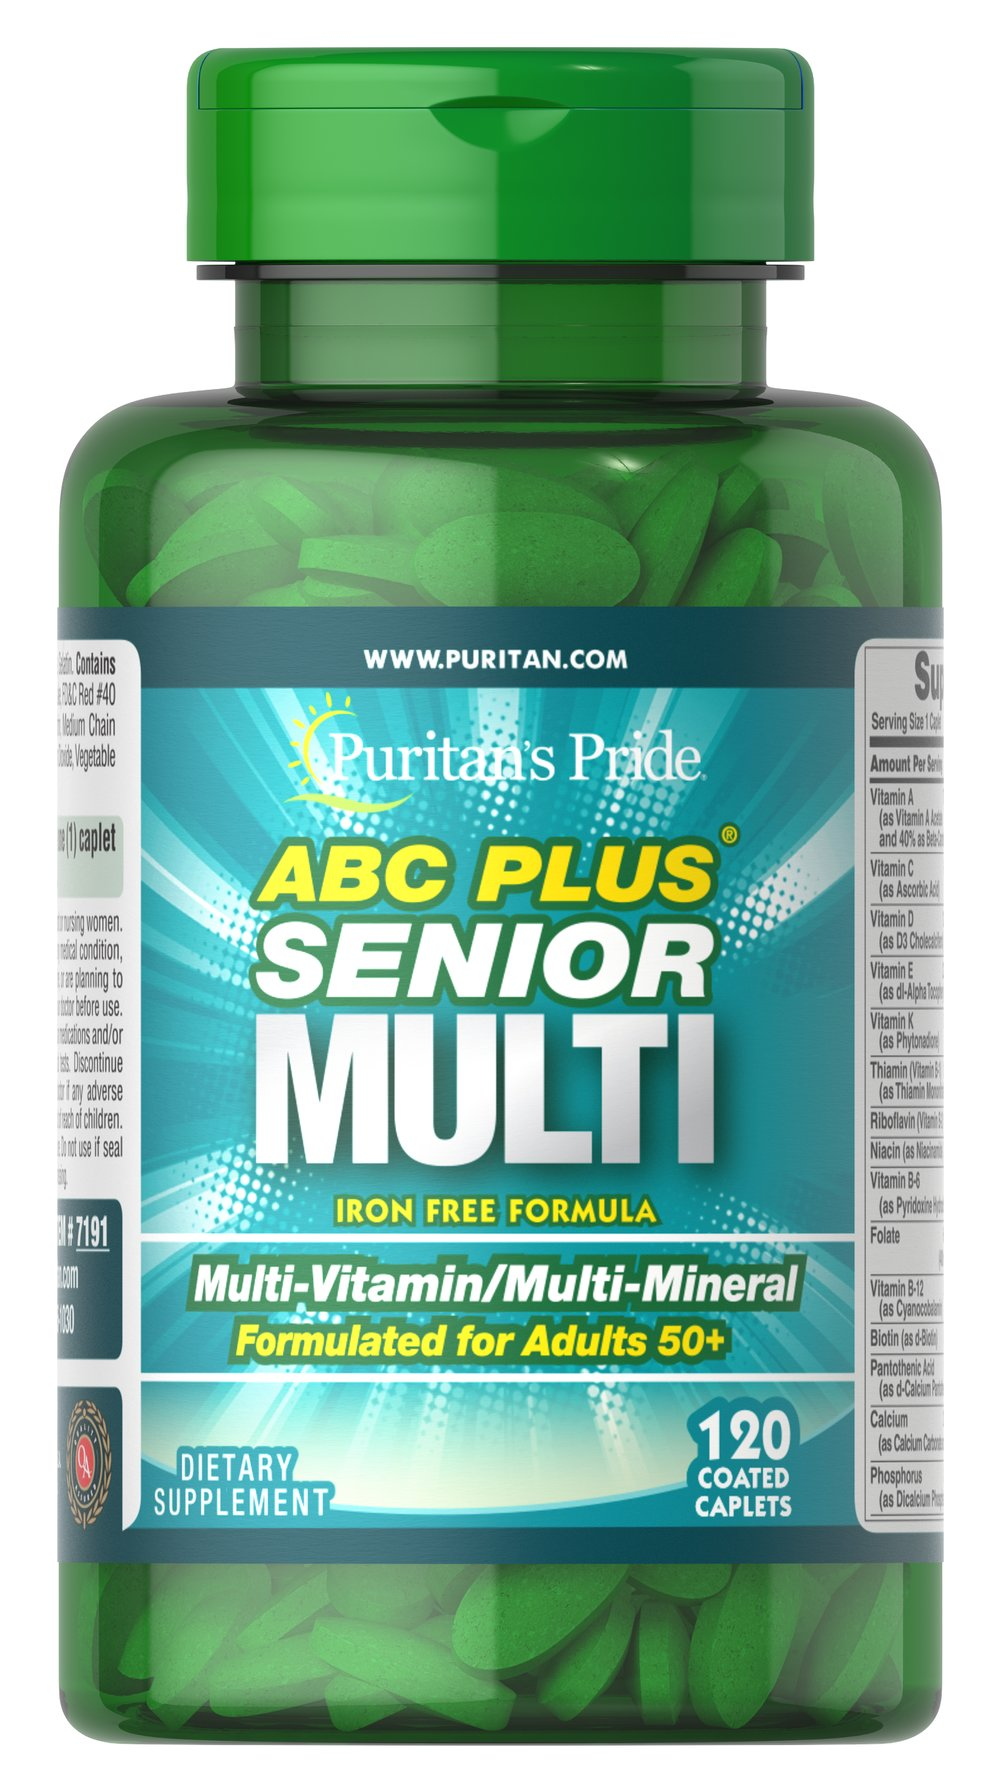 ABC Plus® Senior Multivitamin Multi-Mineral Formula  120 Caplets  $11.04